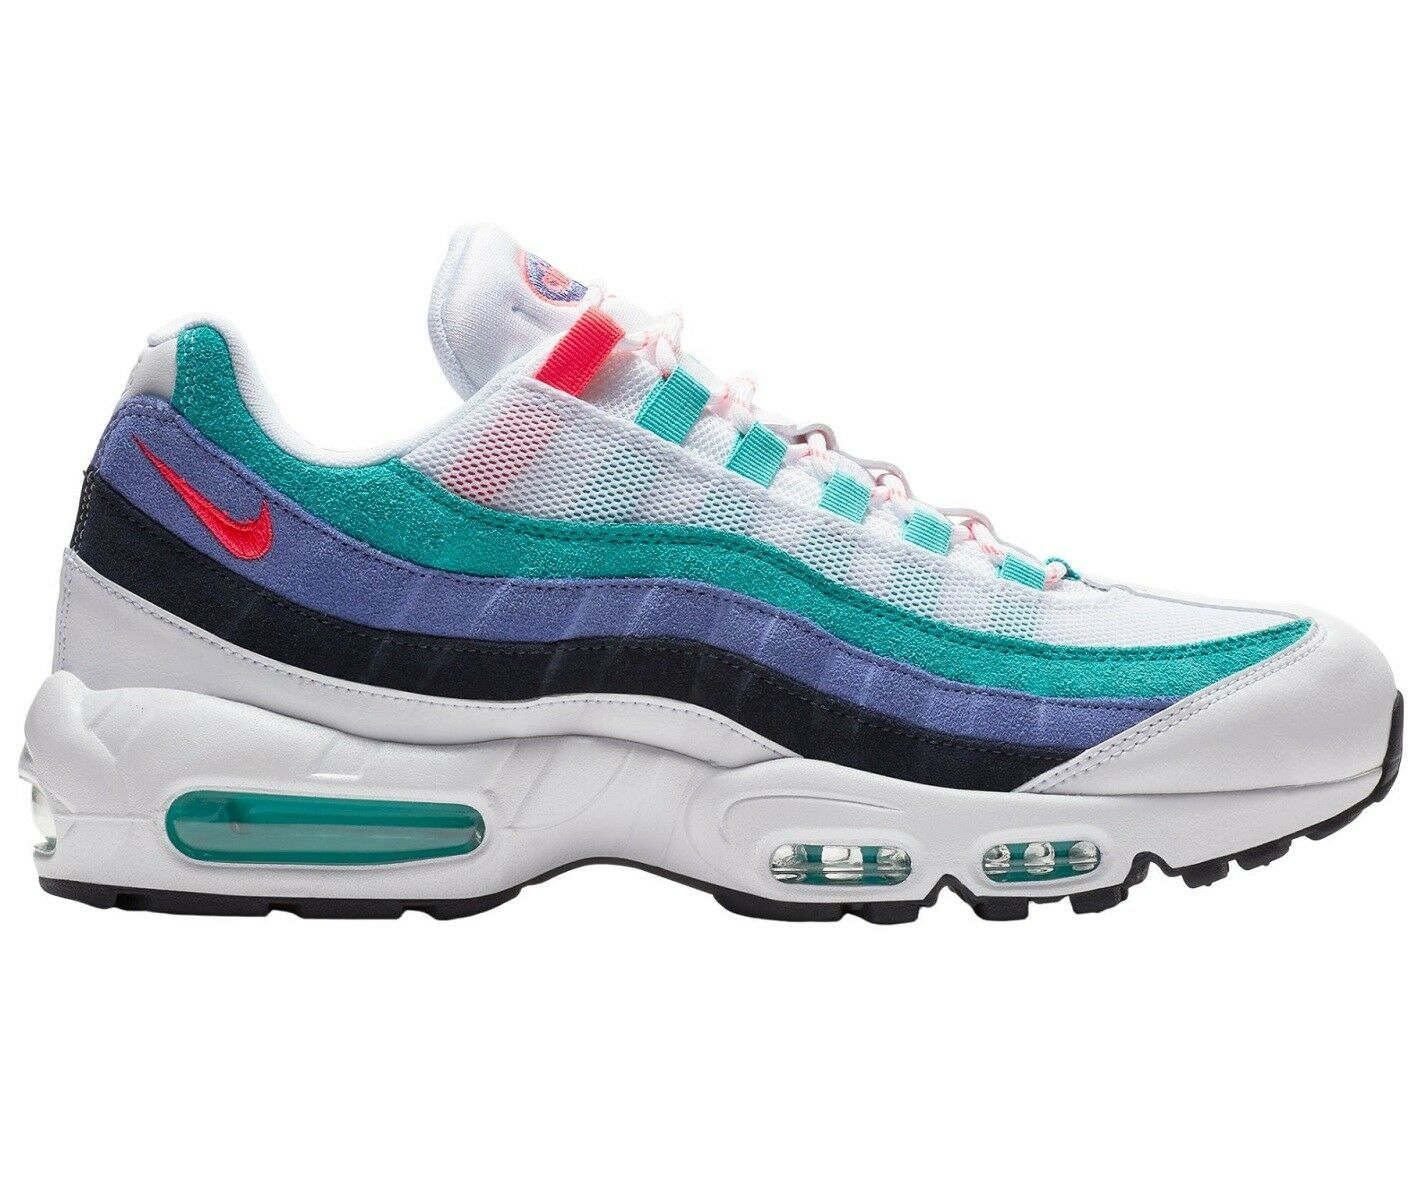 Nike Air Max 95 Origins Mens AV7939-100 White Hyper Jade Running shoes Size 10